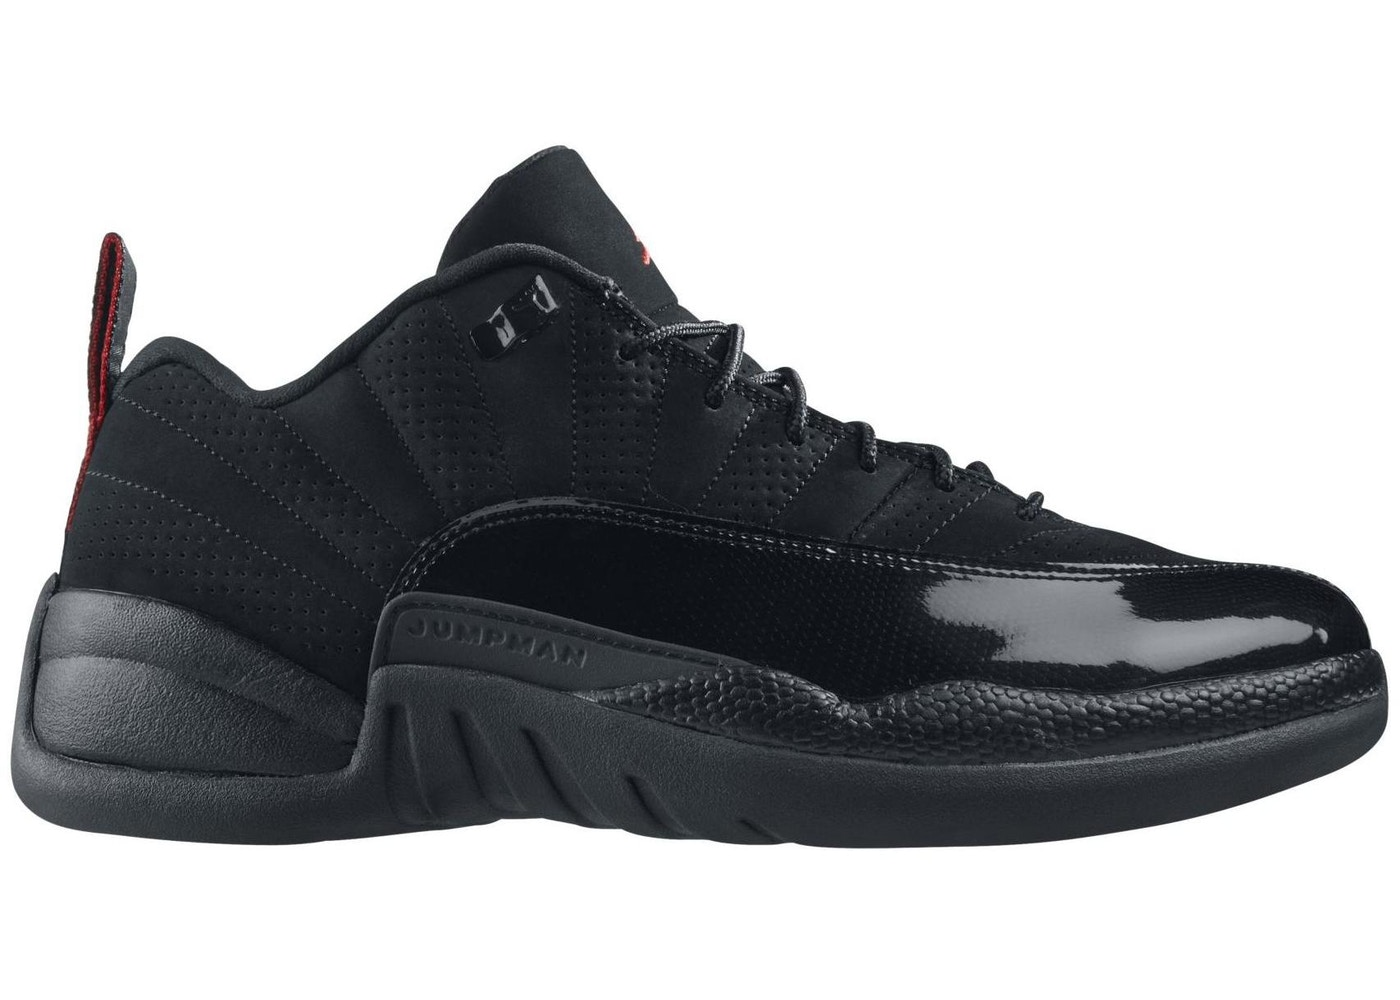 020a39b46576 Jordan 12 Retro Low Black Patent - 308317-001